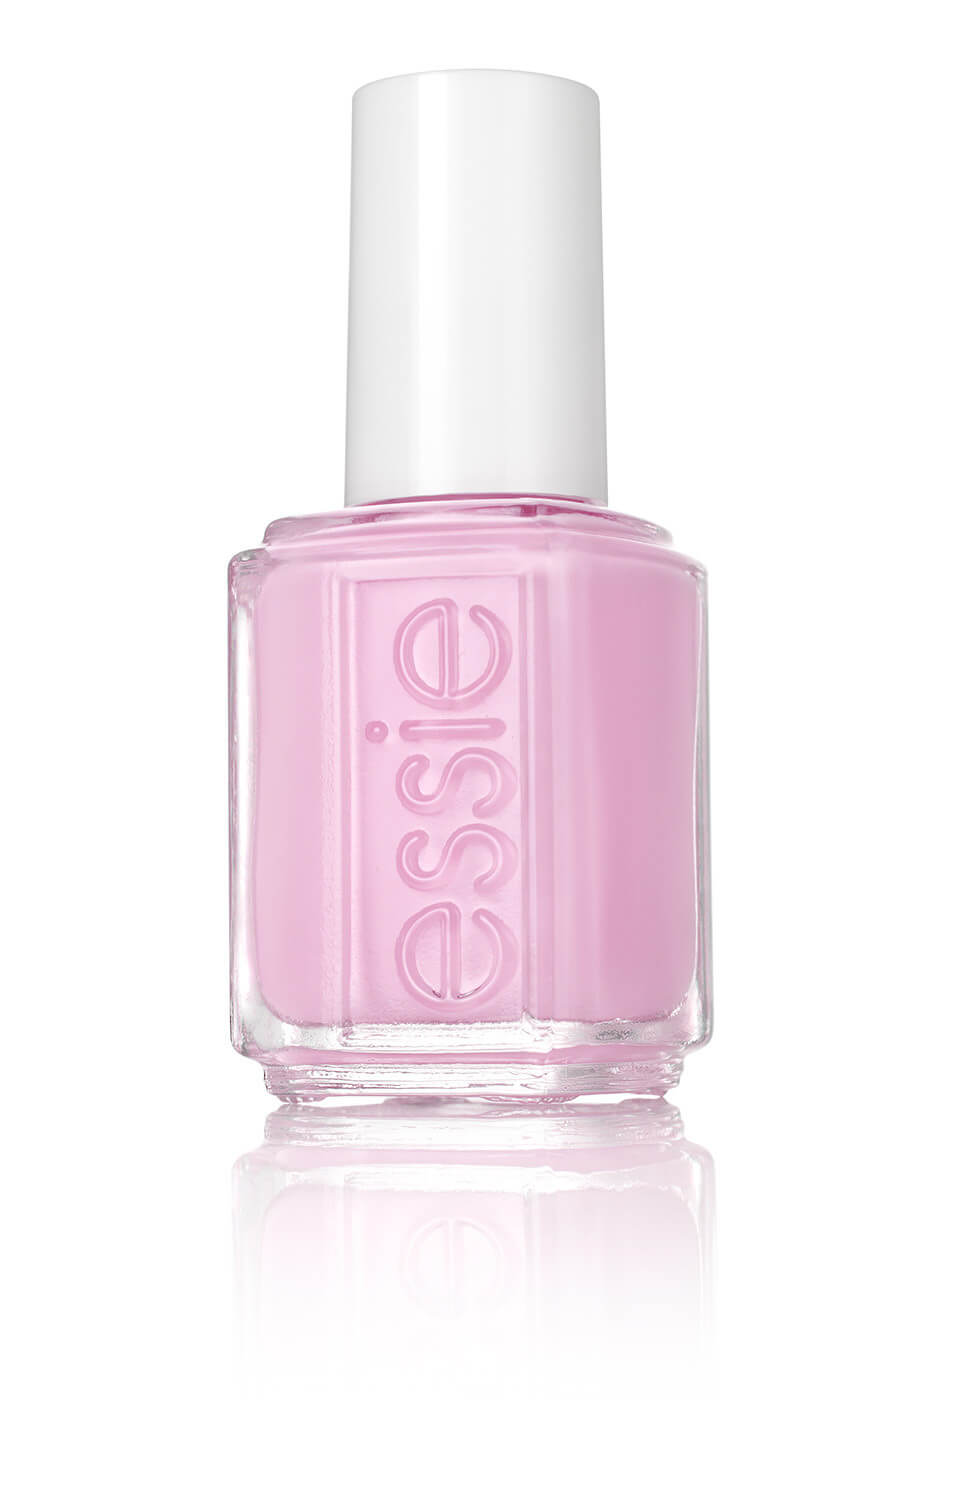 Essie 1081 saved by the bell 13,5ml essie   fall collection 2017   βερνίκια νυχιών